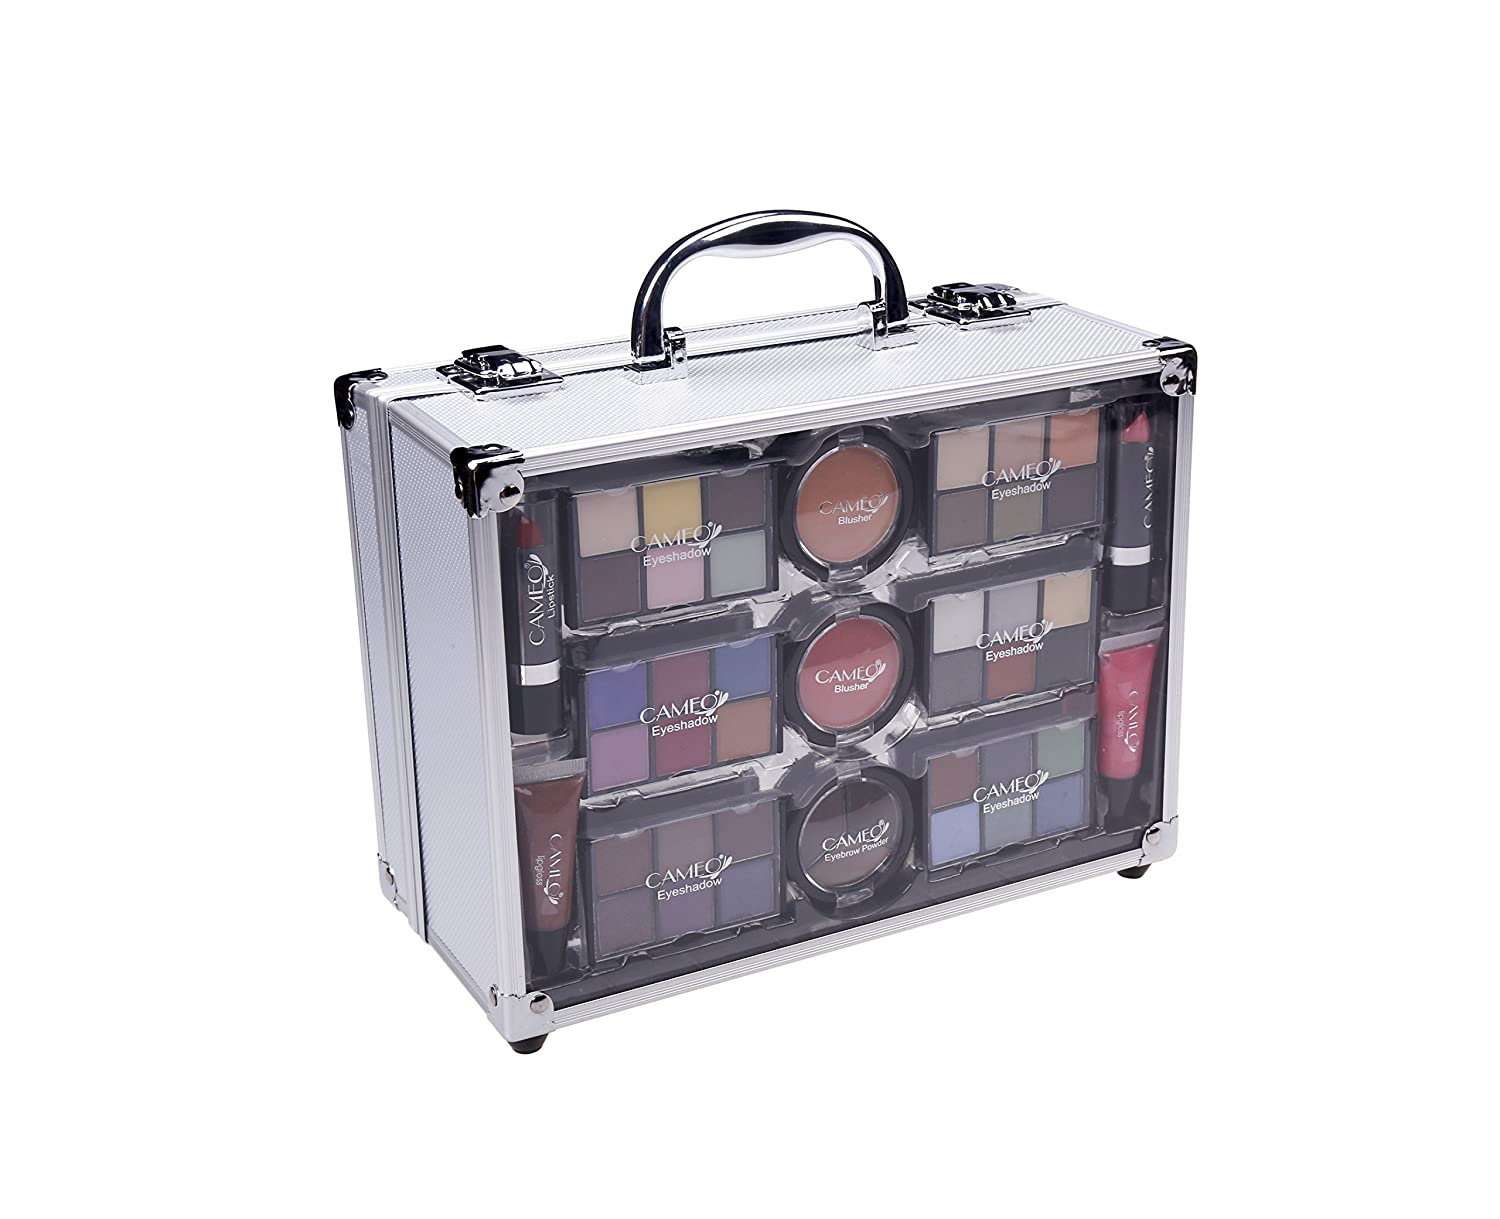 Cameo Carry All Trunk Makeup Kit with Reusable Aluminum Case Exclusive Holiday Gift Set, Black White